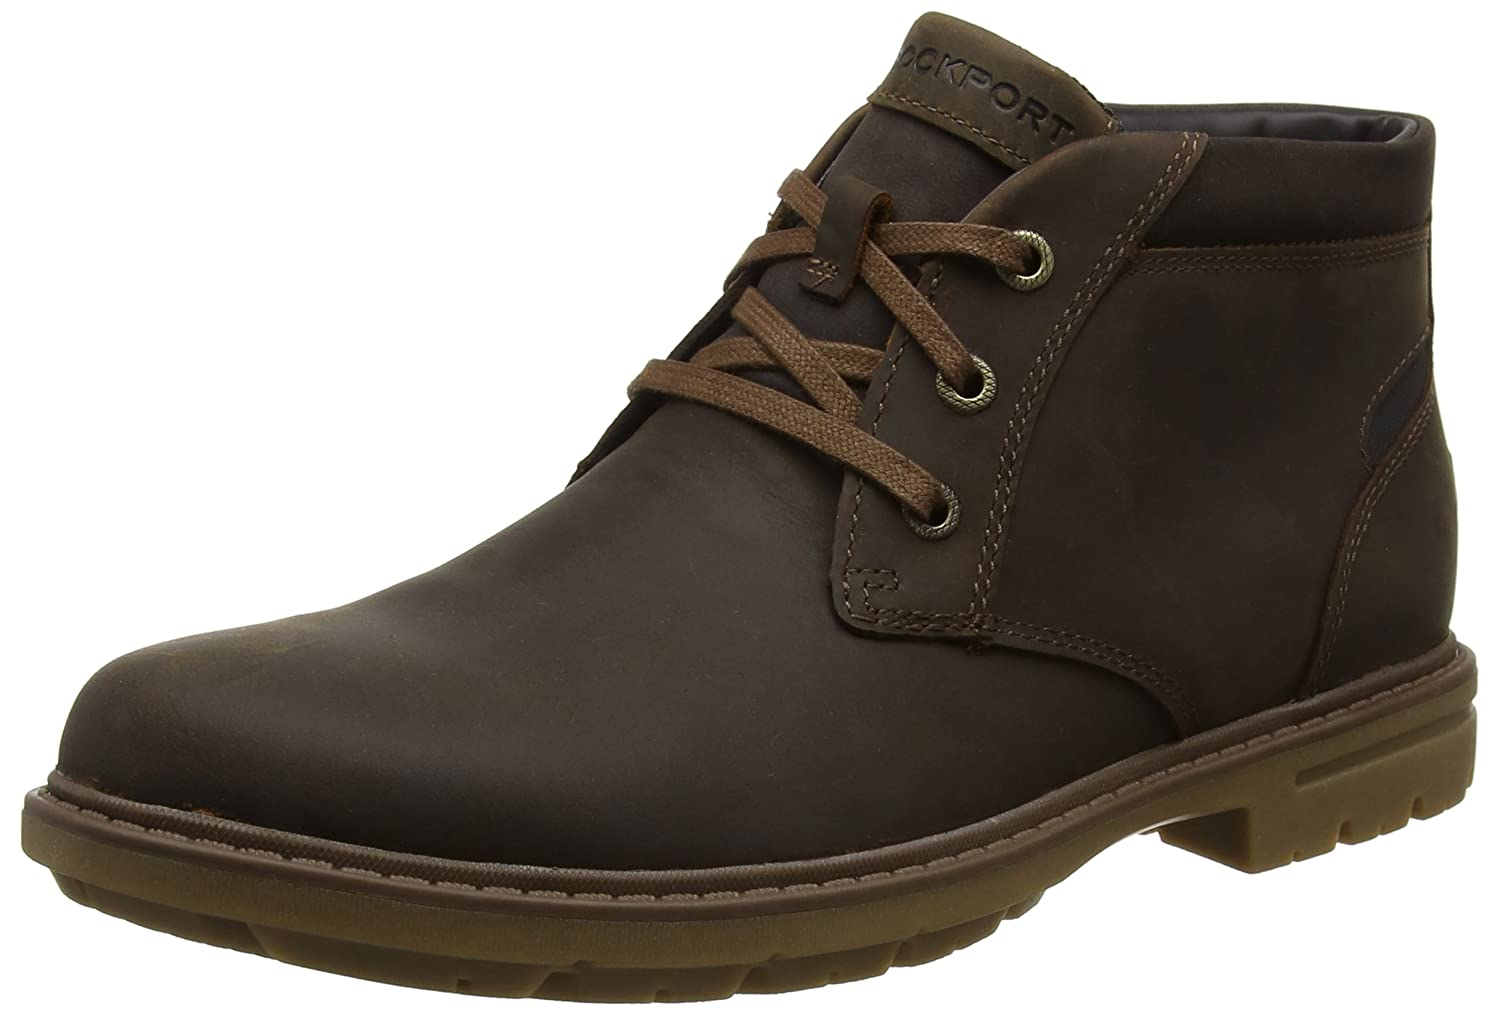 TALLA 42.5 EU. Rockport Tough Bucks Chukka, Botas Hombre